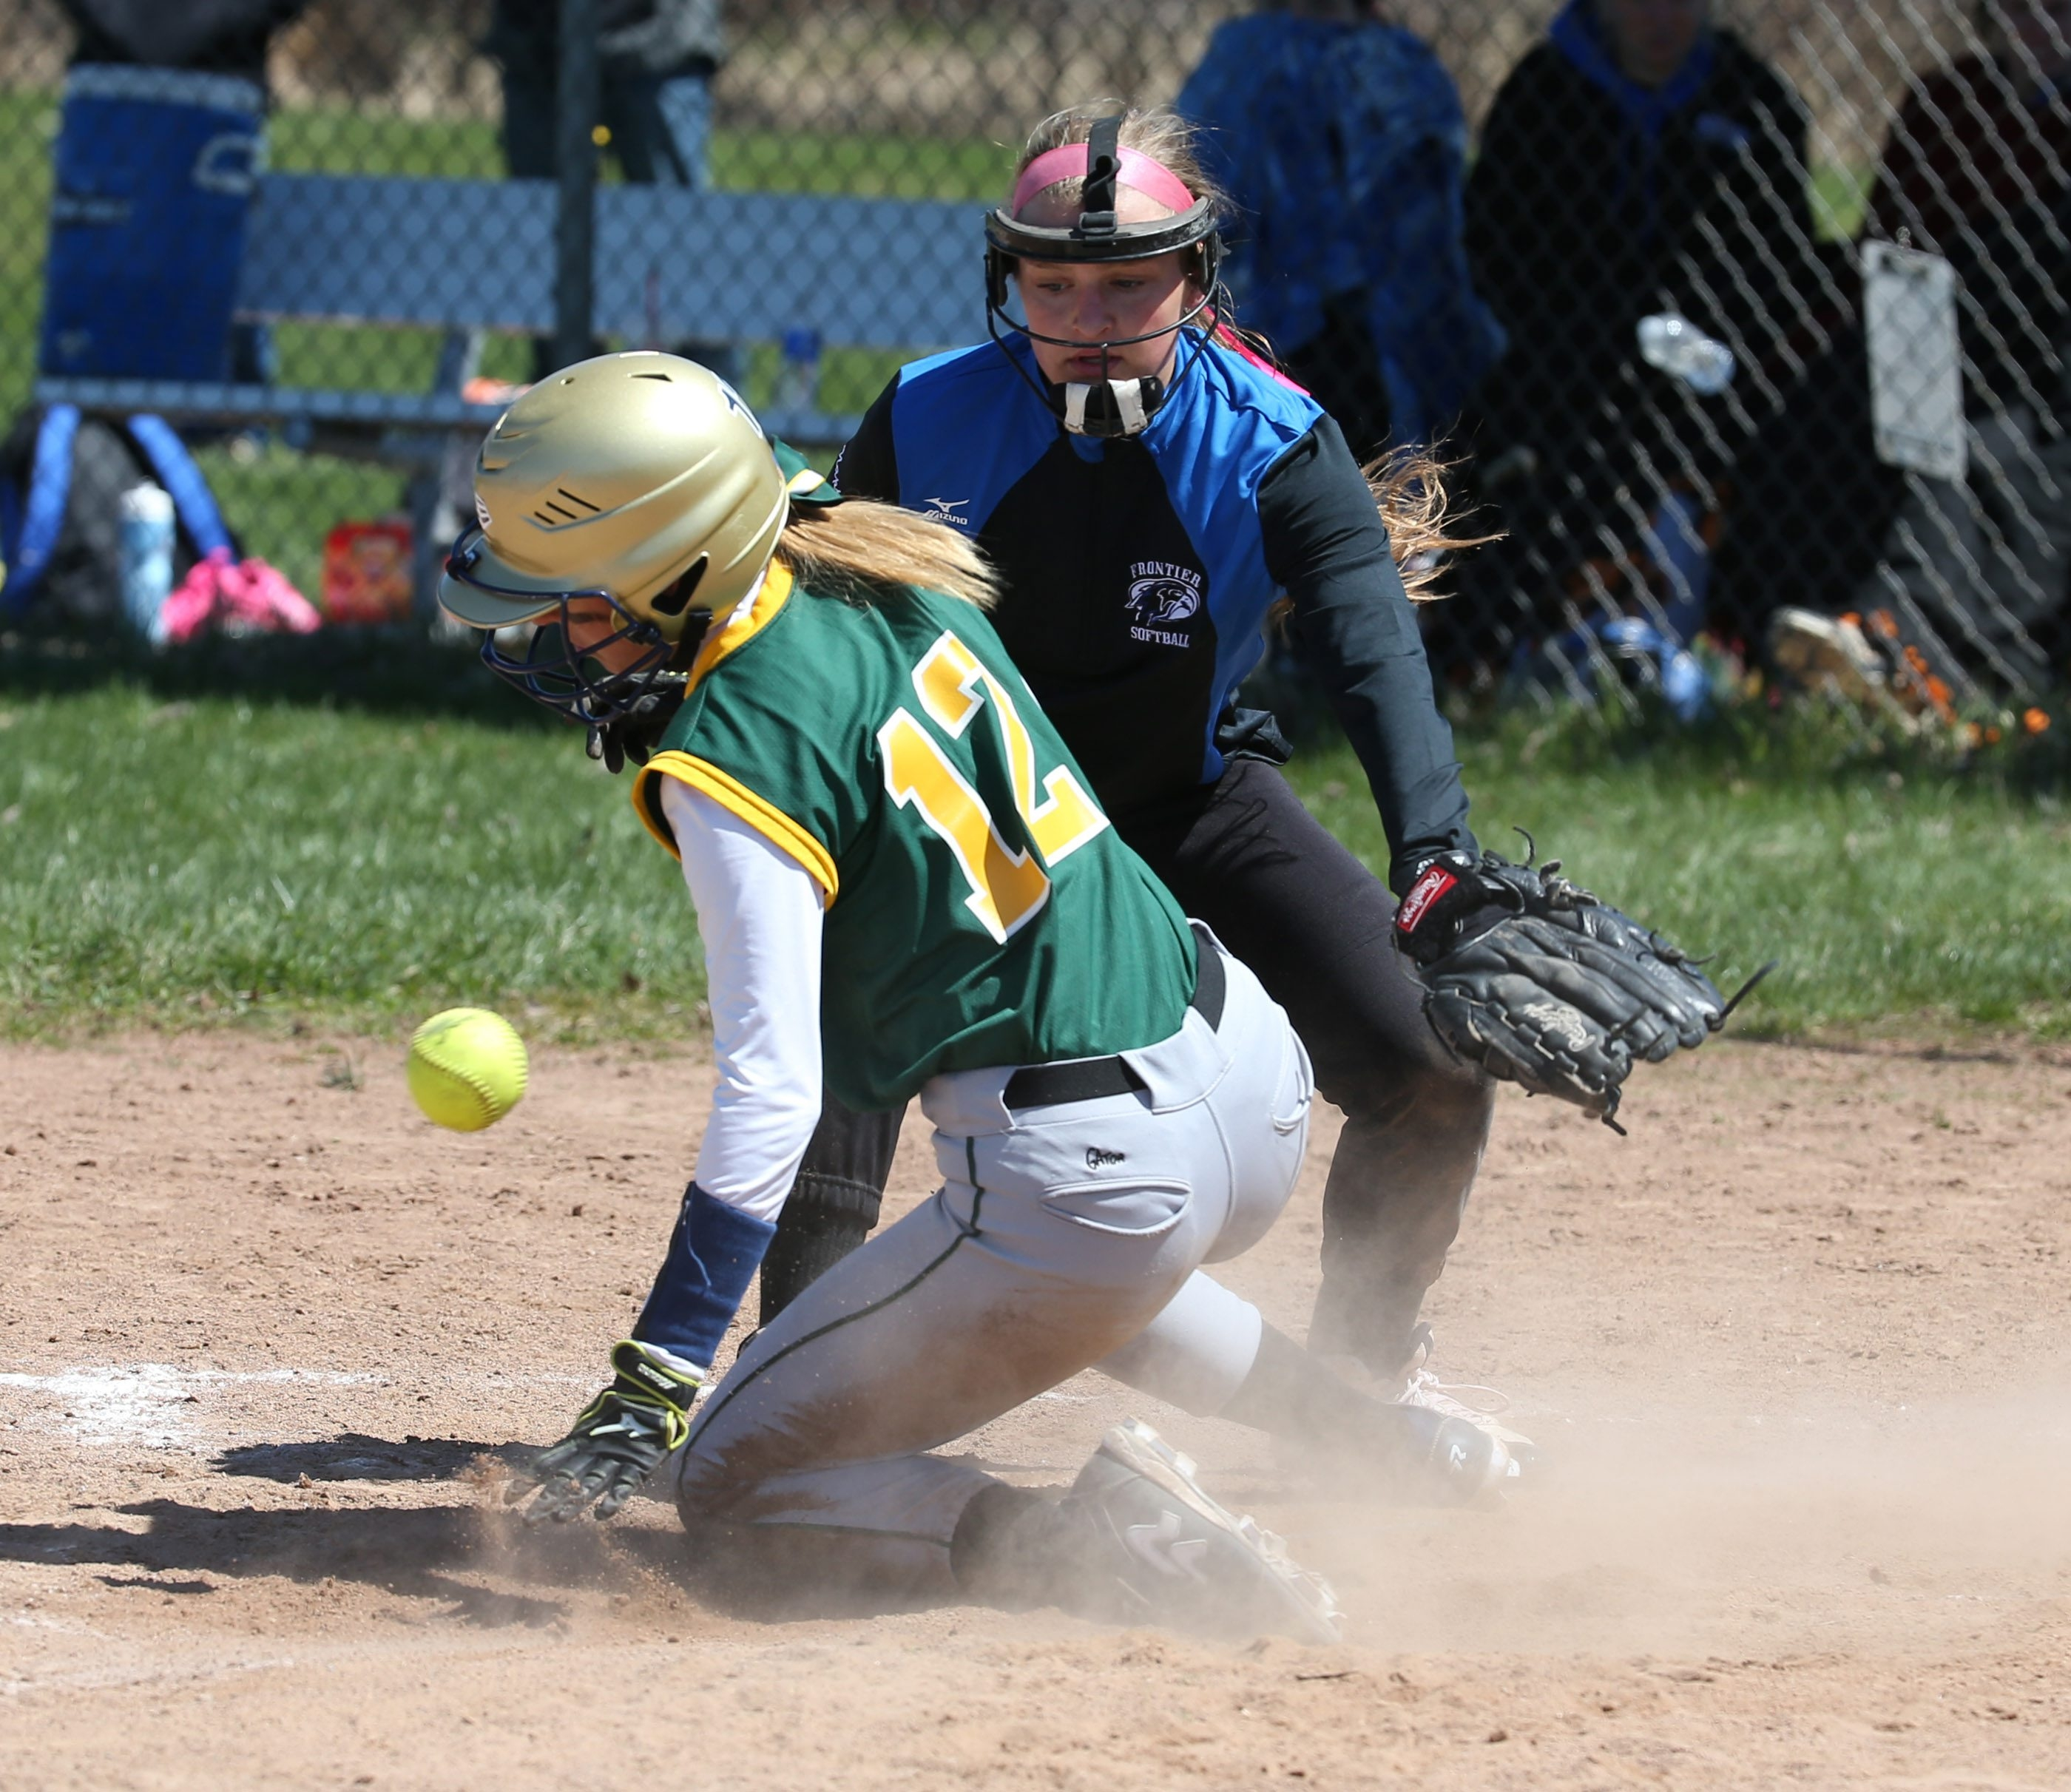 West Seneca East's Brittany Nowatzki slides home safely as Frontier's Oliva Nappo tries to apply the tag in the sixth inning of their game in the Depew Wildcat softball tournament.